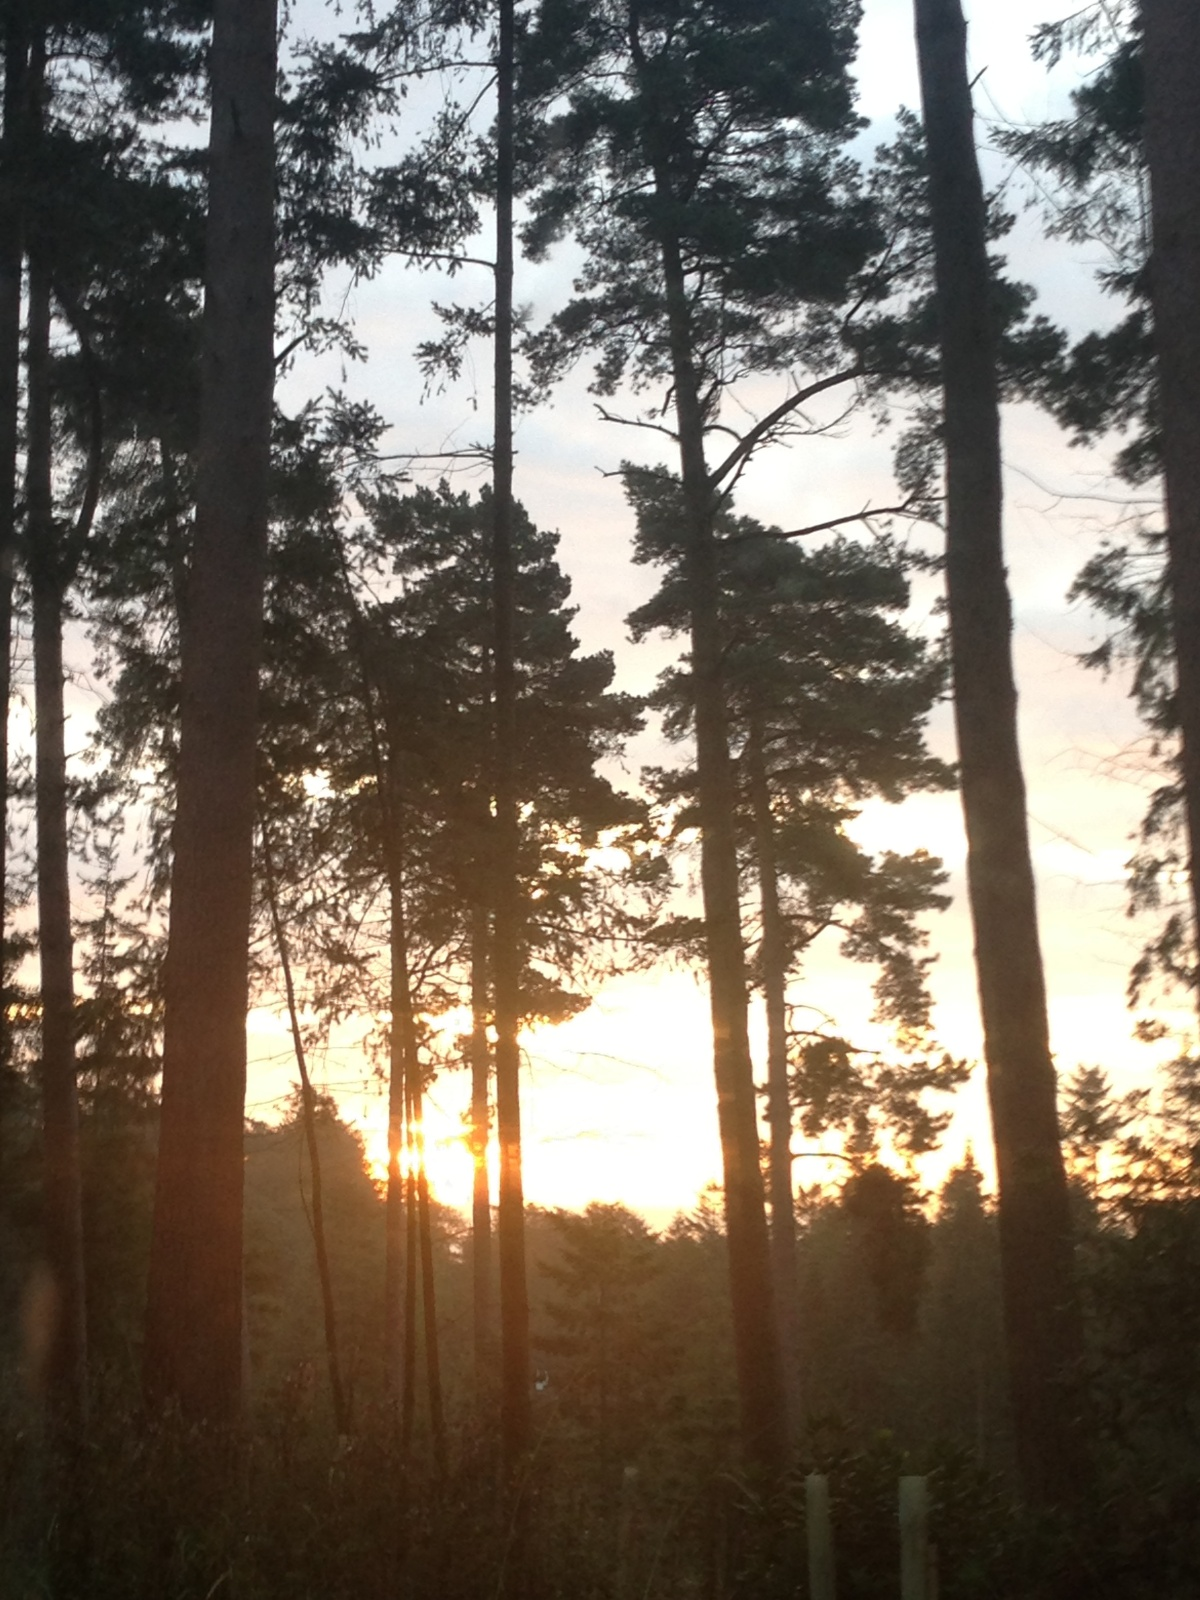 Our first family holiday – Center Parcs,Longleat